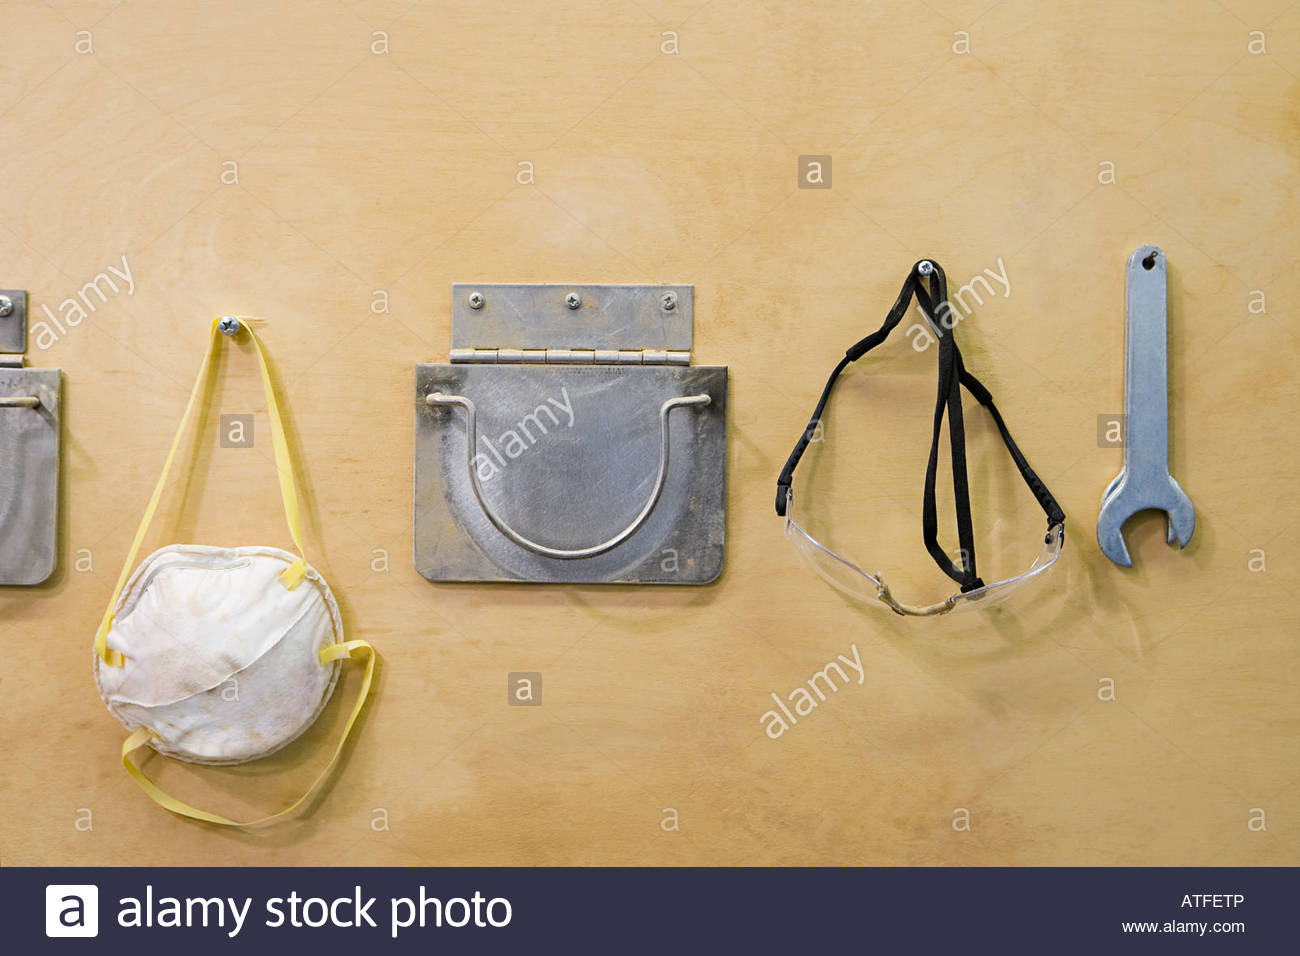 Saftey wear on a wall - Stock Image